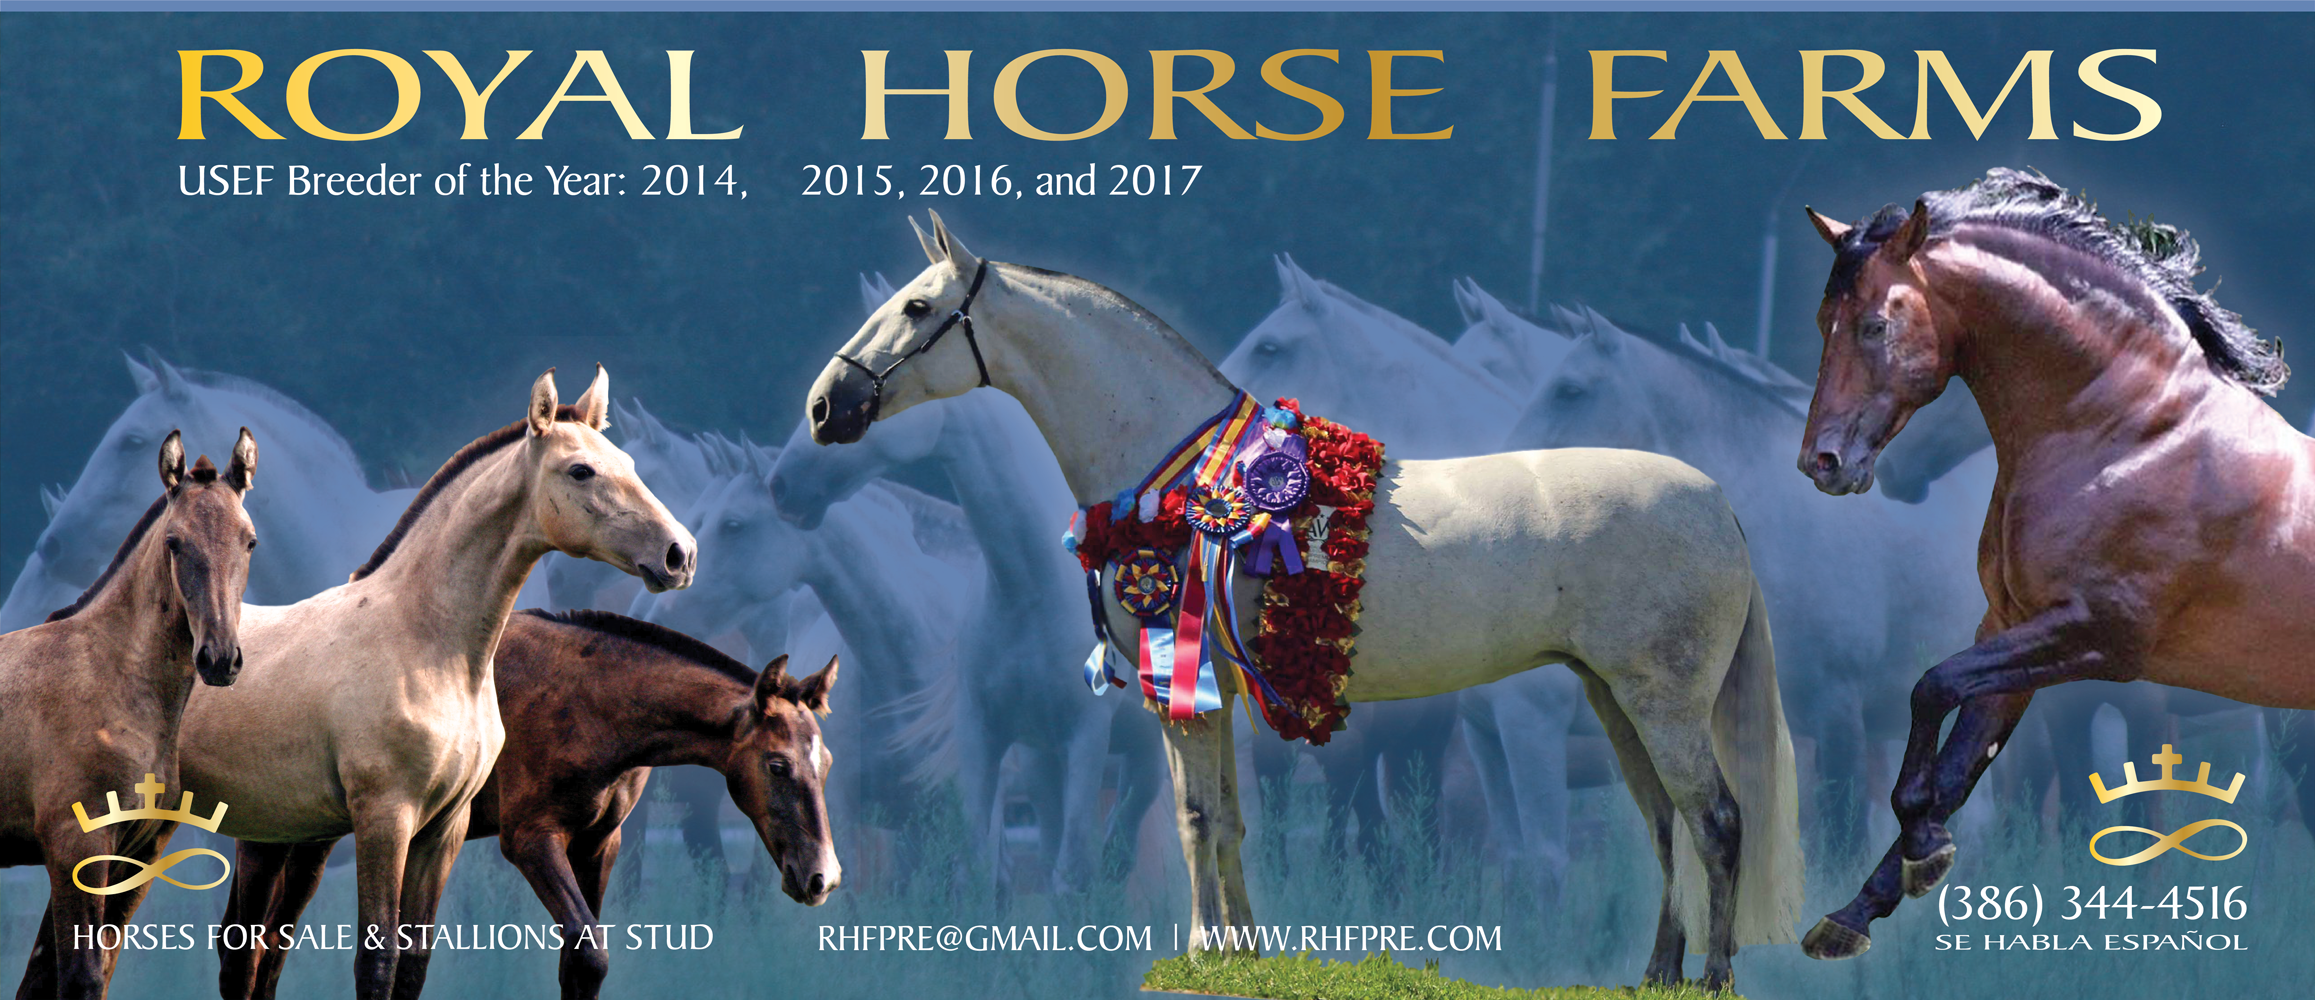 RoyalHorseFarmsAd_Issue2_web